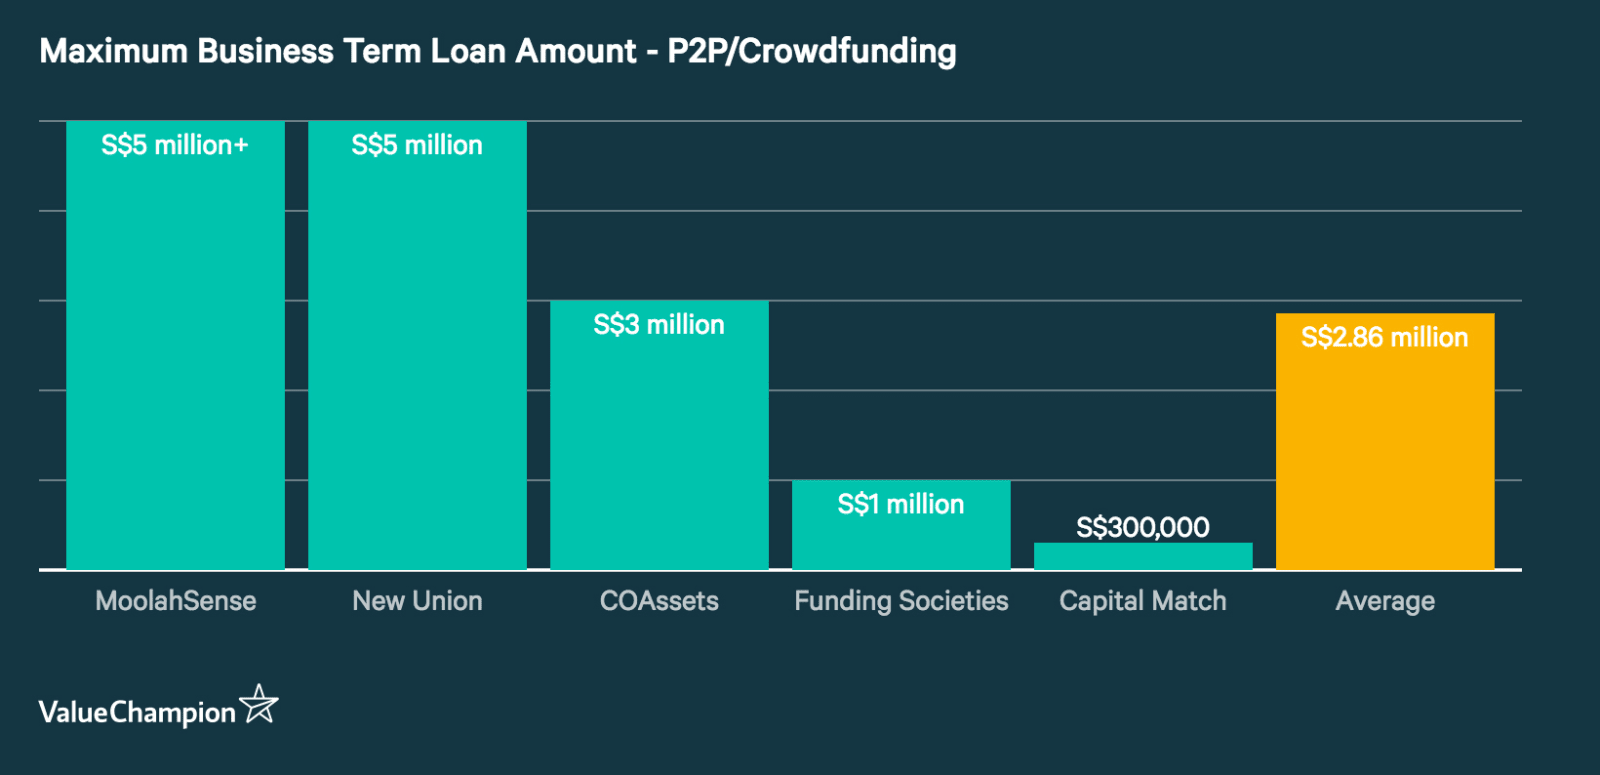 Column graph displaying the maximum business term loan amounts from P2P/Crowdfunding sites in Singapore. MoolahSense offers the largest (S$5 million and greater), Capital Match offers the smallest (S$200,000) and the average is (S$2.8 million)